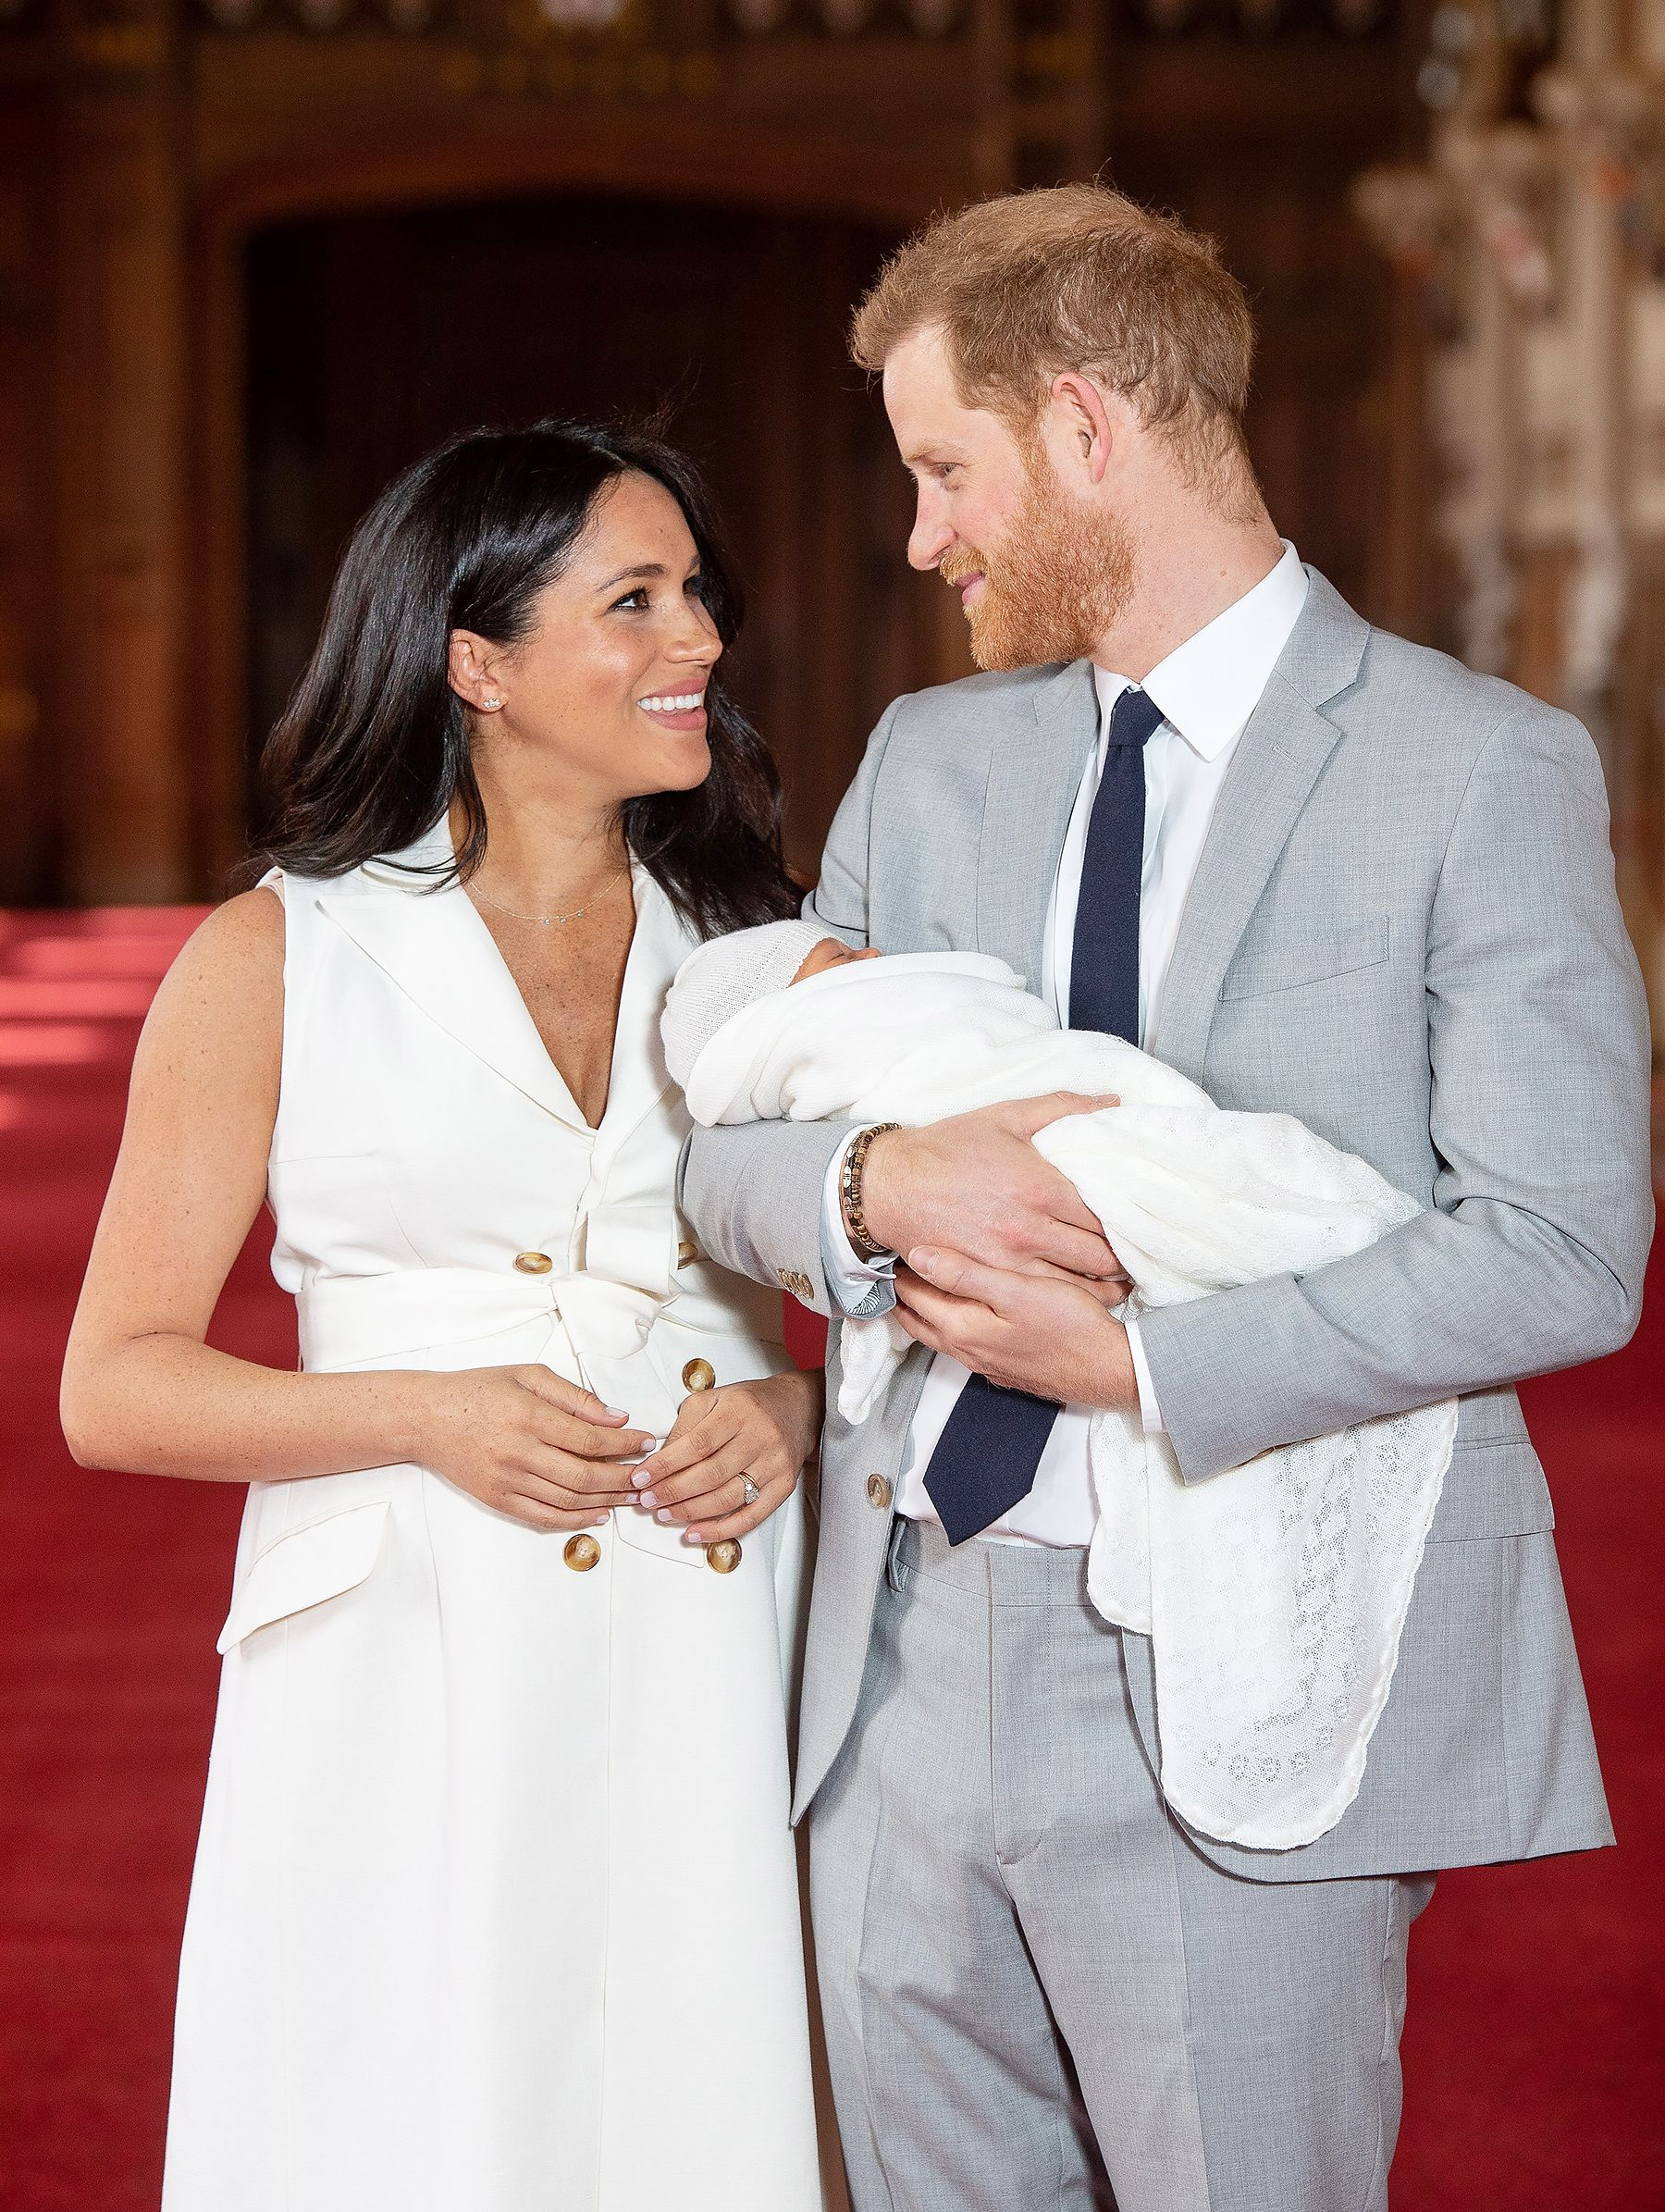 See The First Photos Of Meghan Markle And Prince Harry With Their Royal Baby Prince Harry Prince Harry And Meghan Meghan Markle Prince Harry